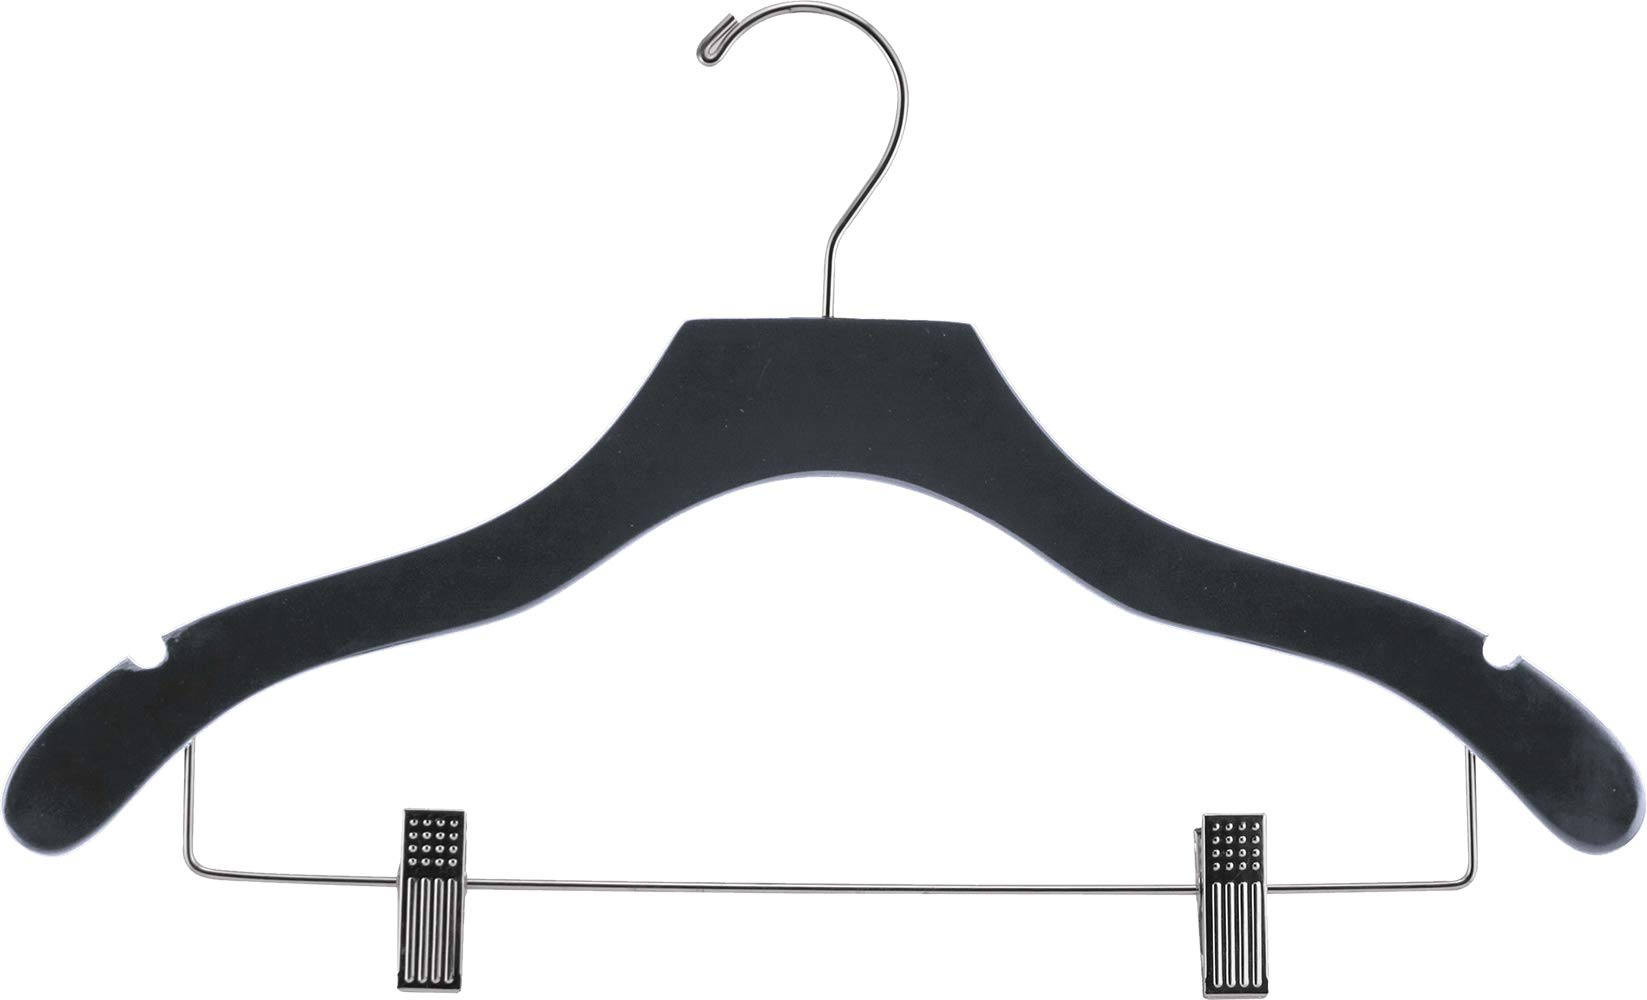 The Great American Hanger Company Wooden Combo Black Finish Hanger with Clips and Notches (Box of 100)